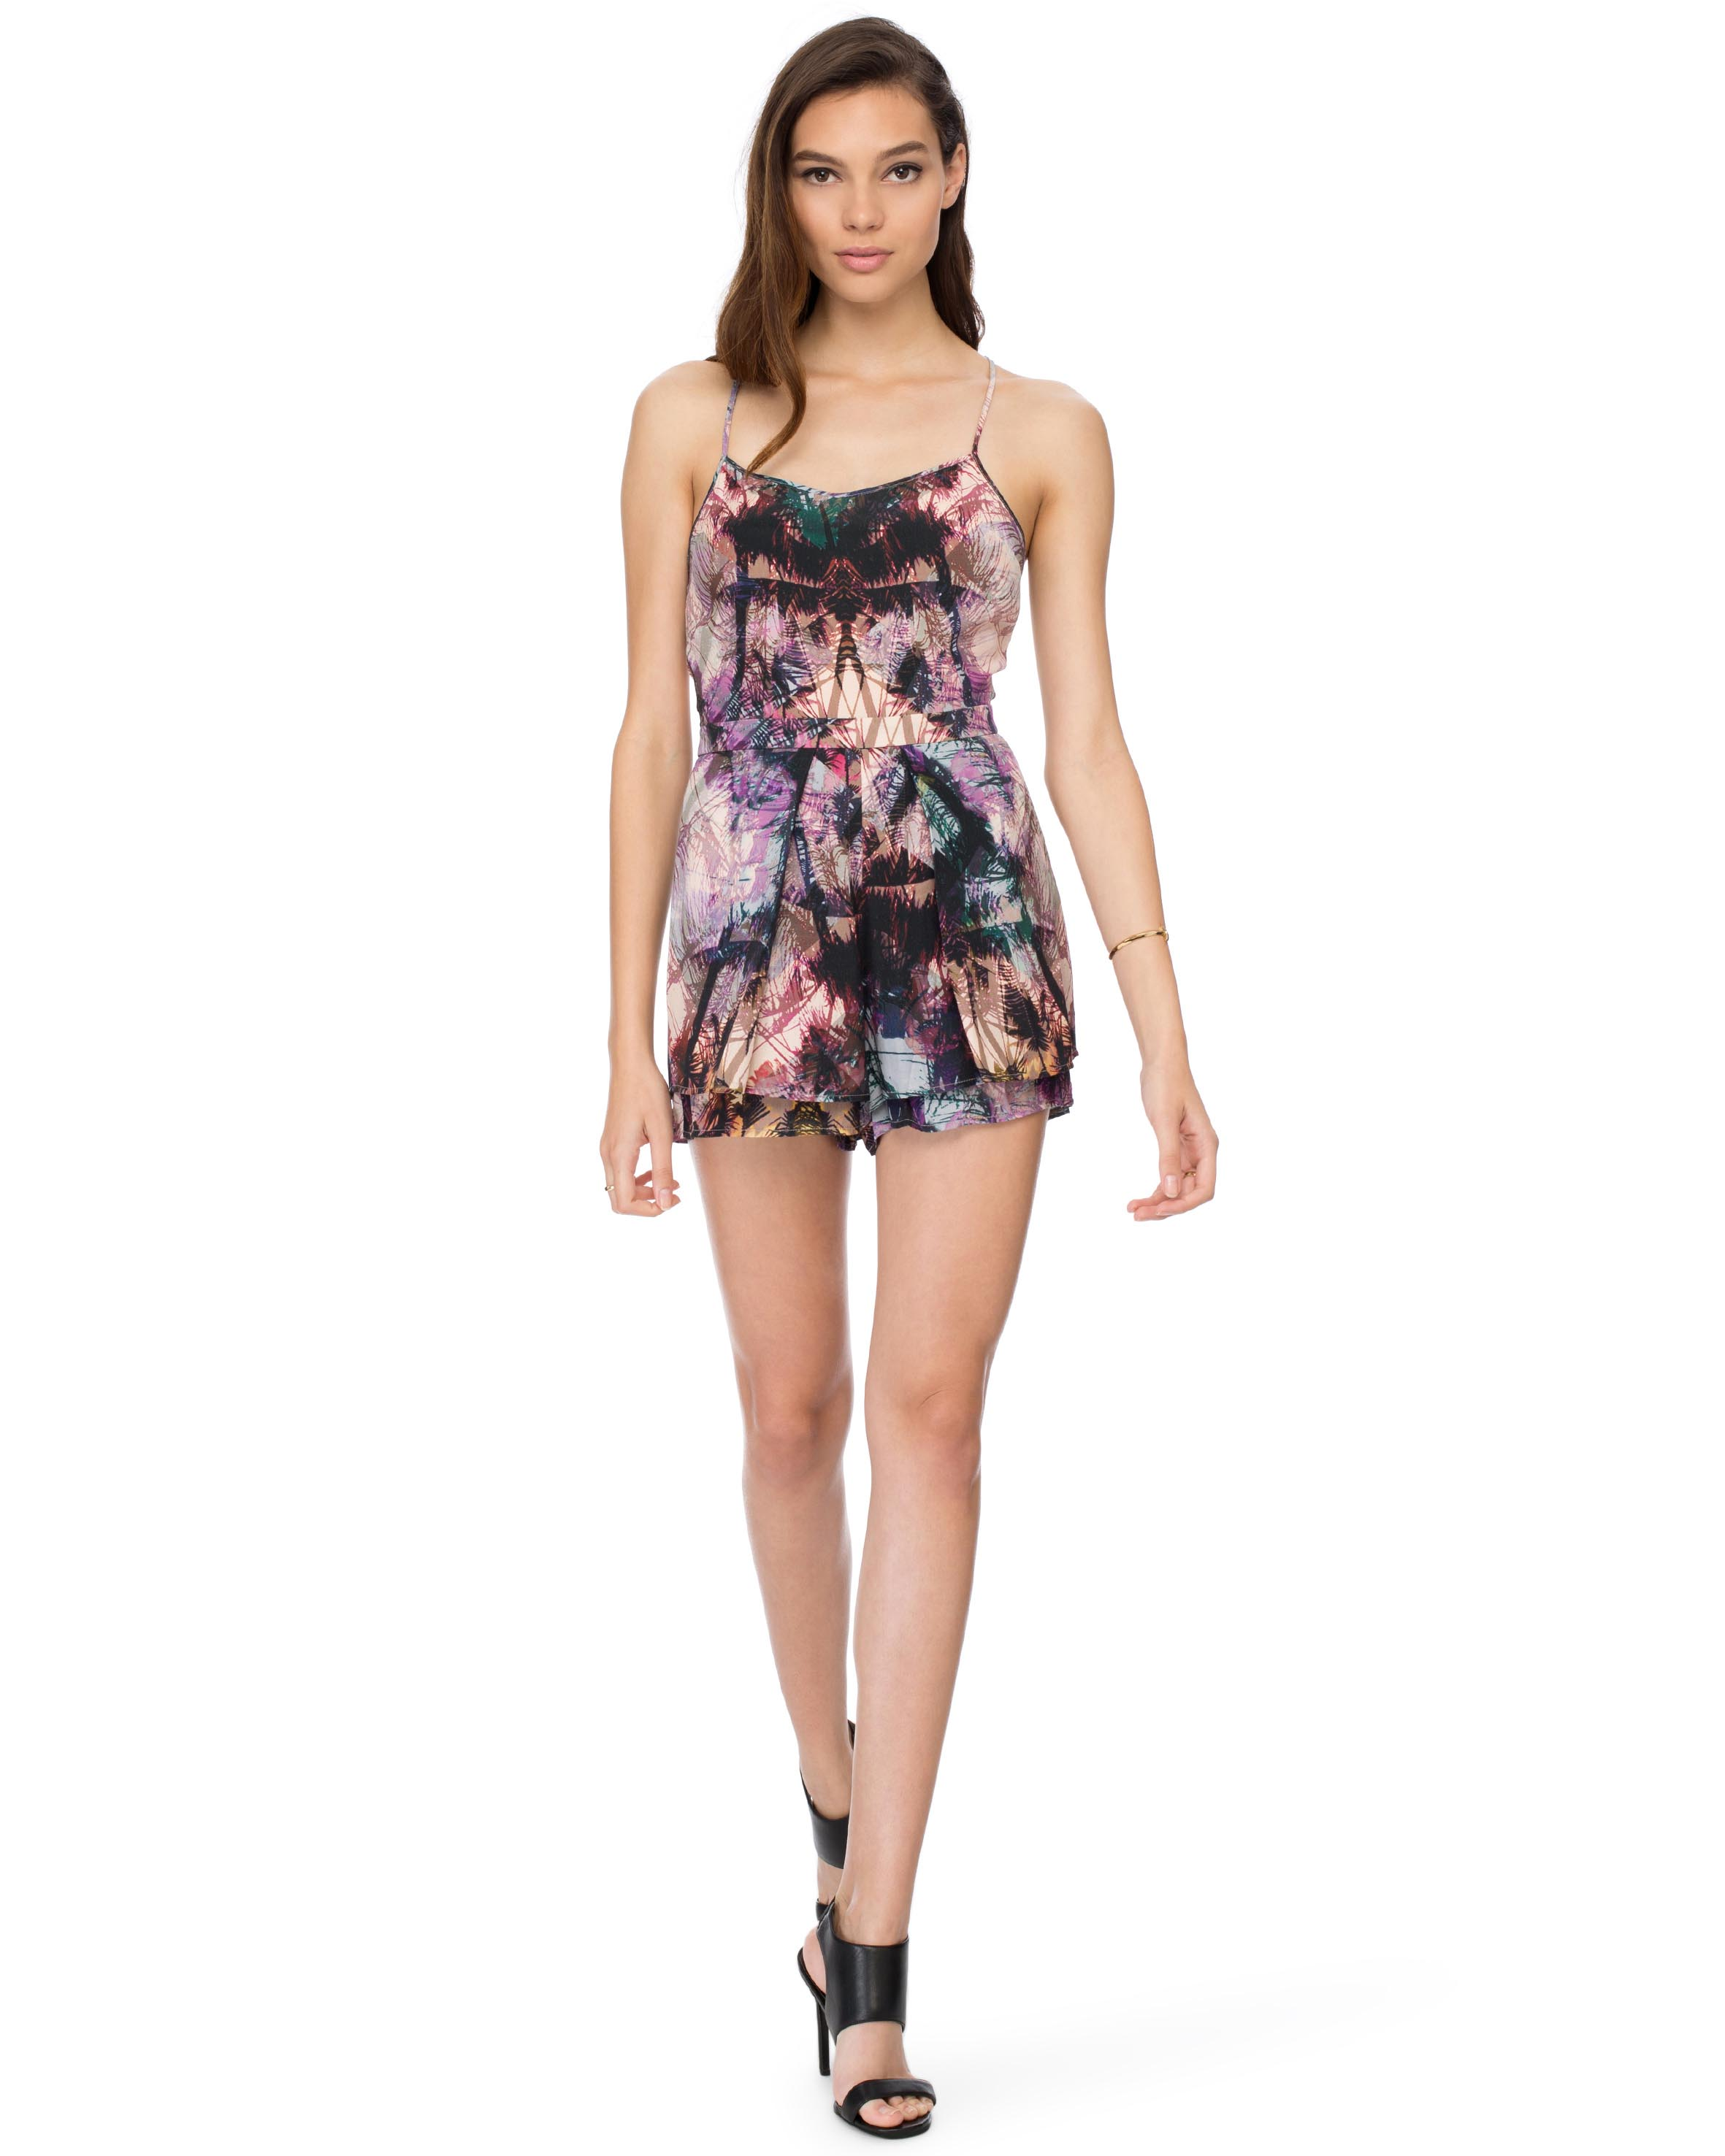 Junior clothing stores list Online clothing stores